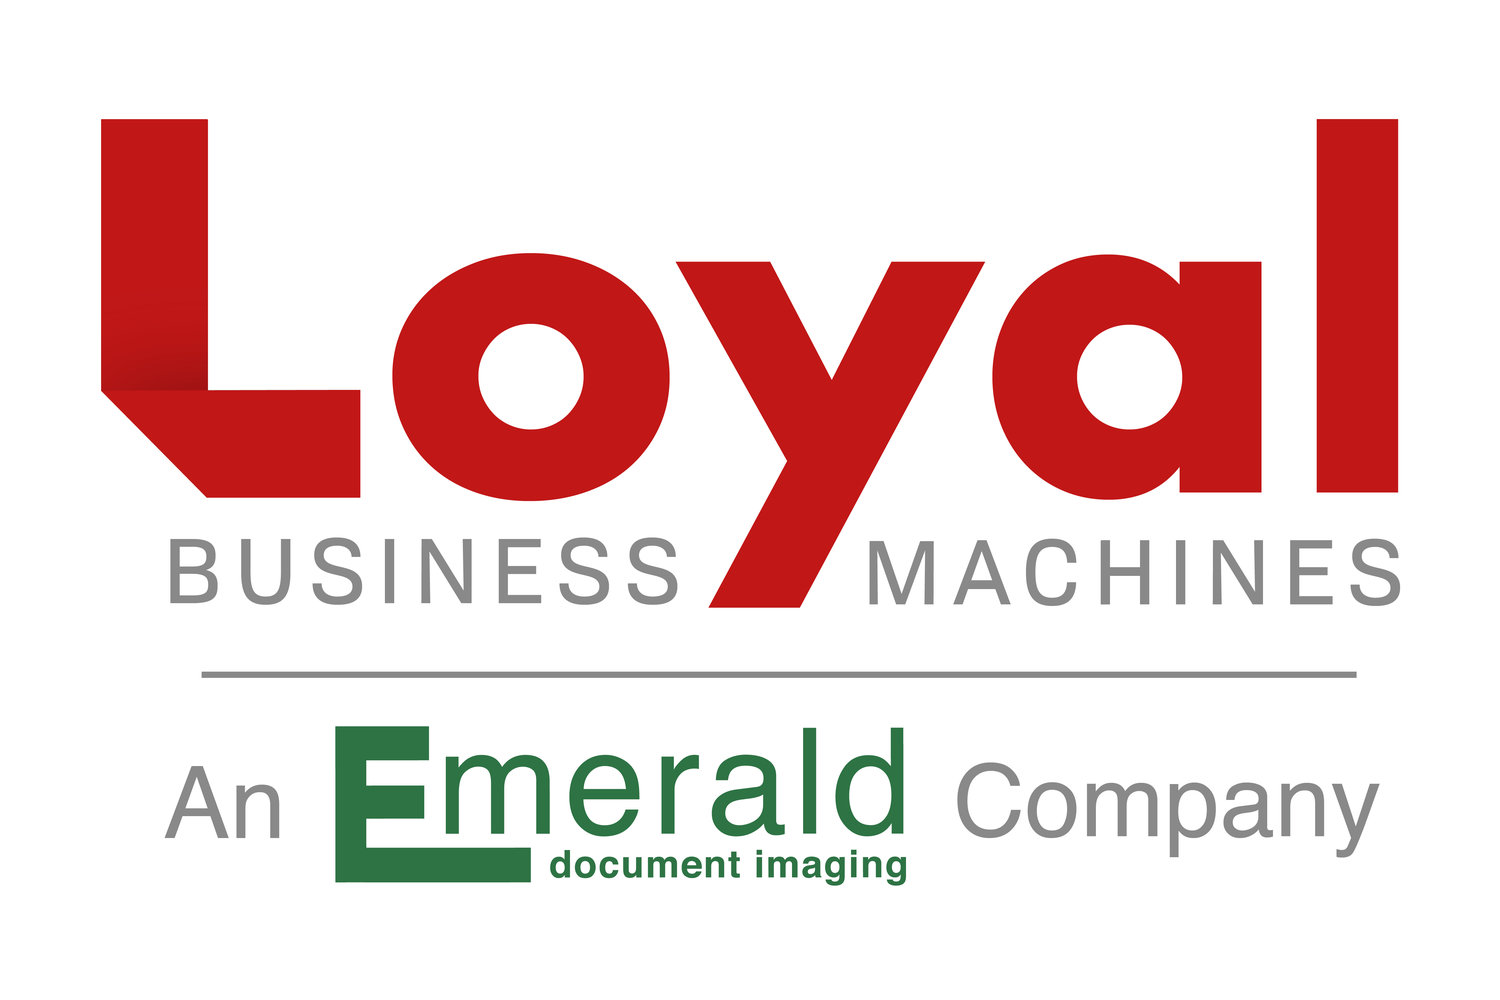 Loyal Business Machines